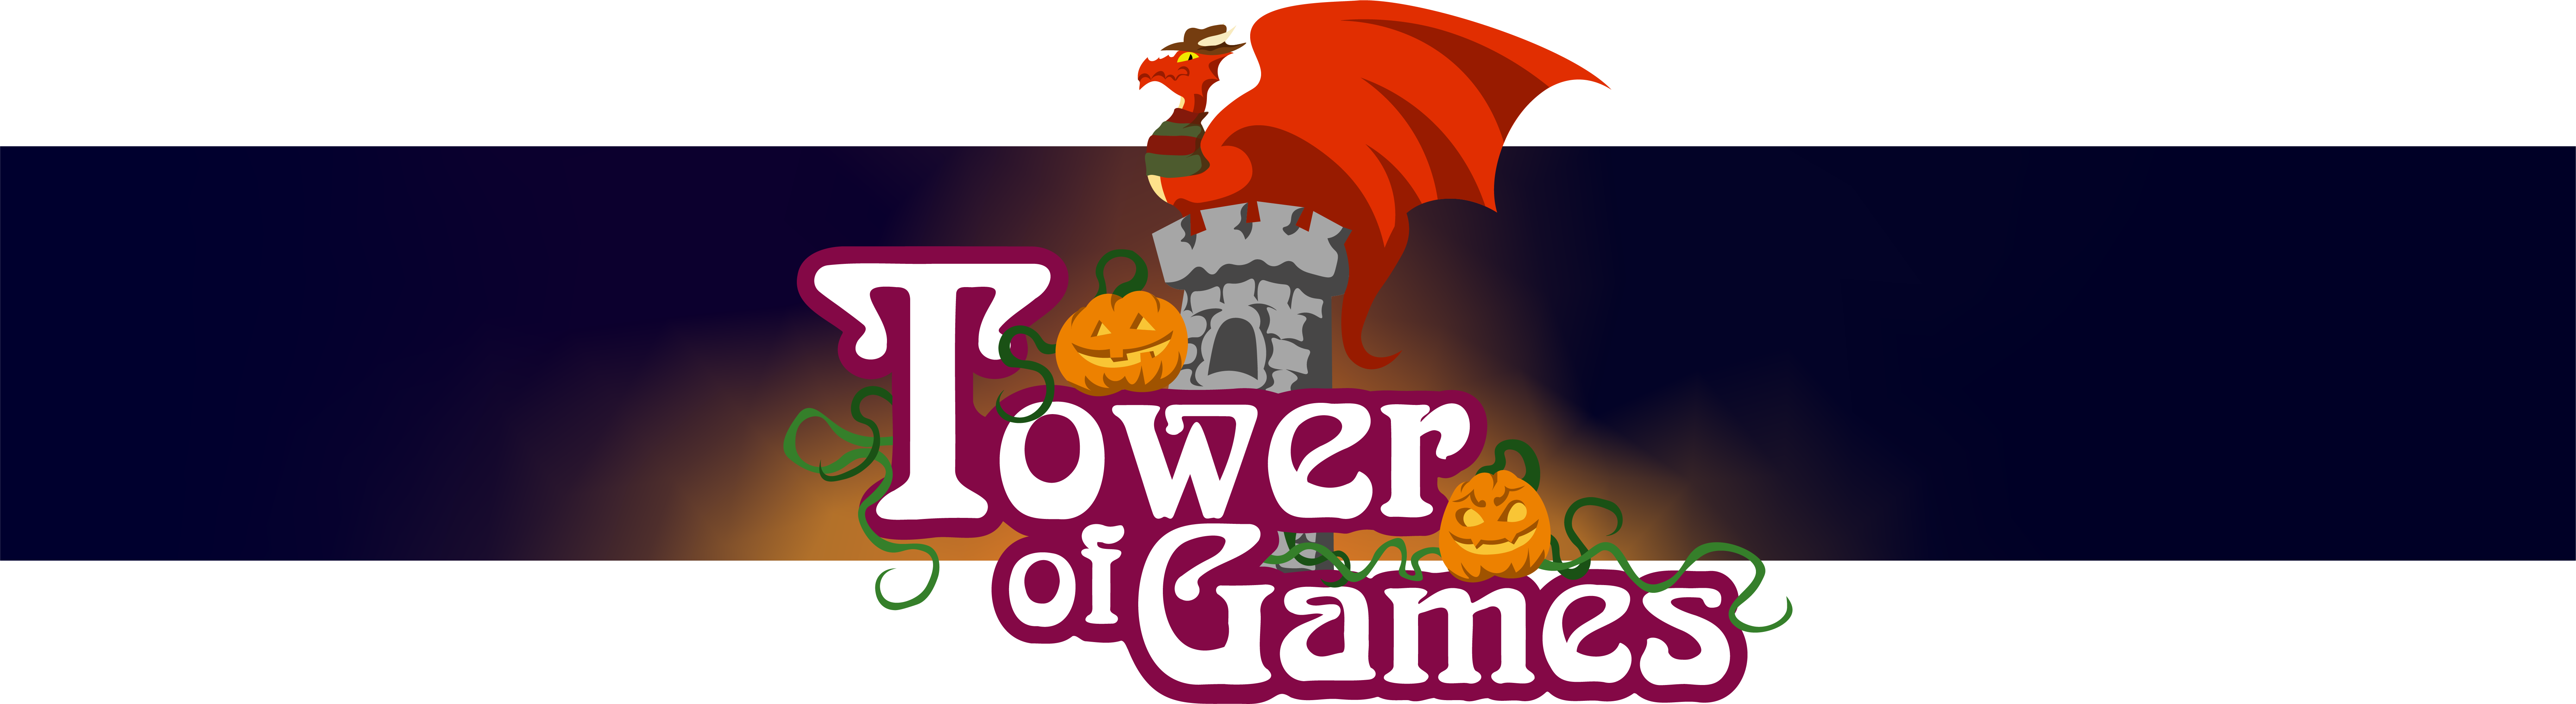 Tower of Games